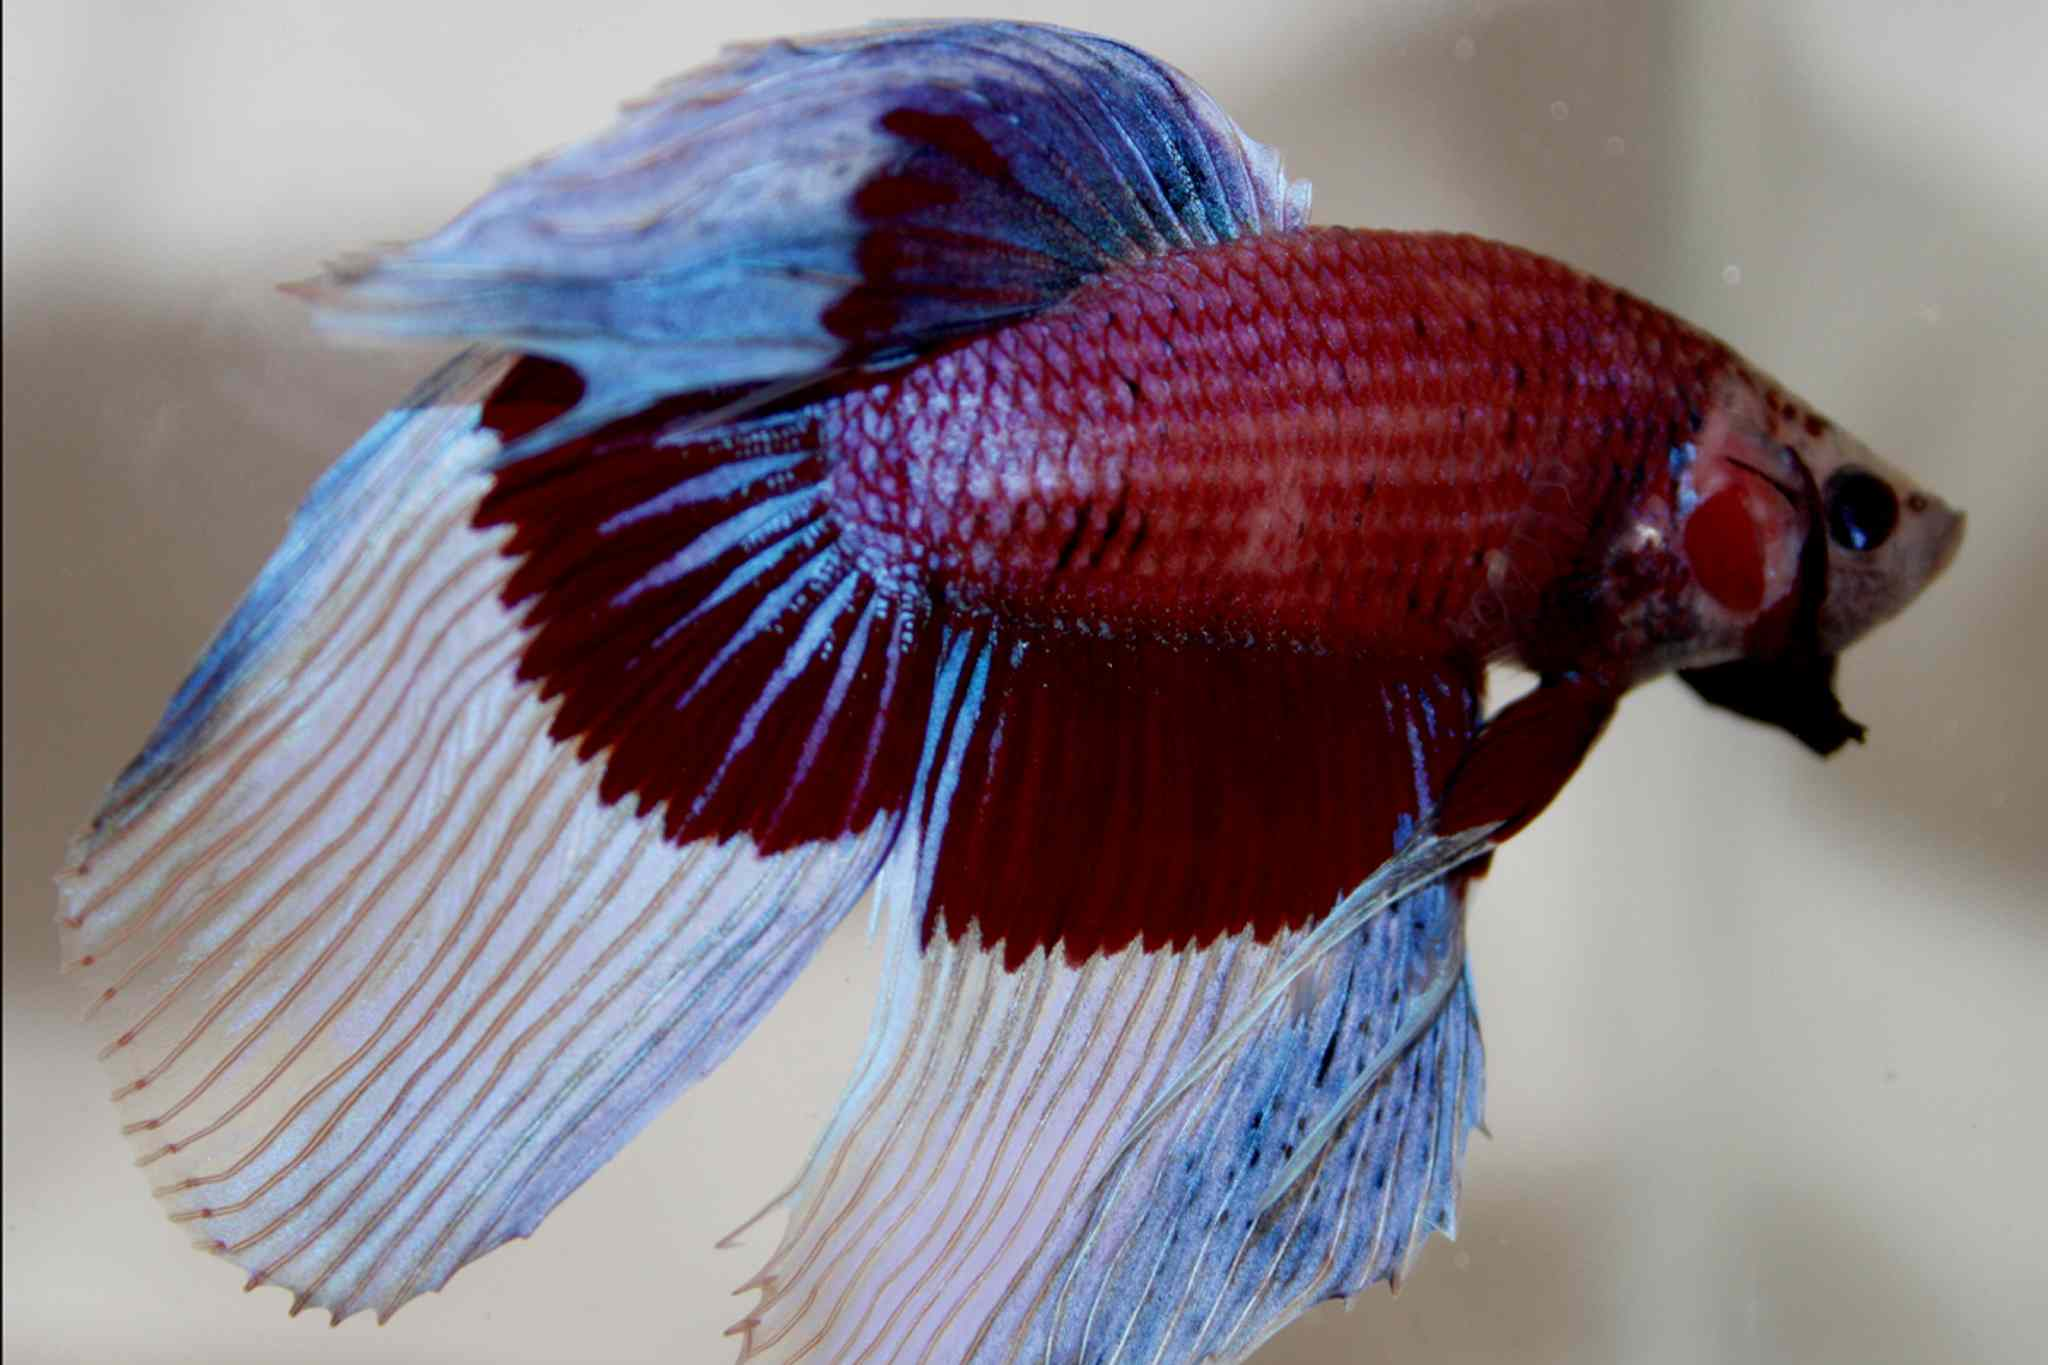 The betta fish is a home designer's dream pet, with their brilliantly coloured scales. They also require little maintenance, since they are able to get oxygen from air as well as water.